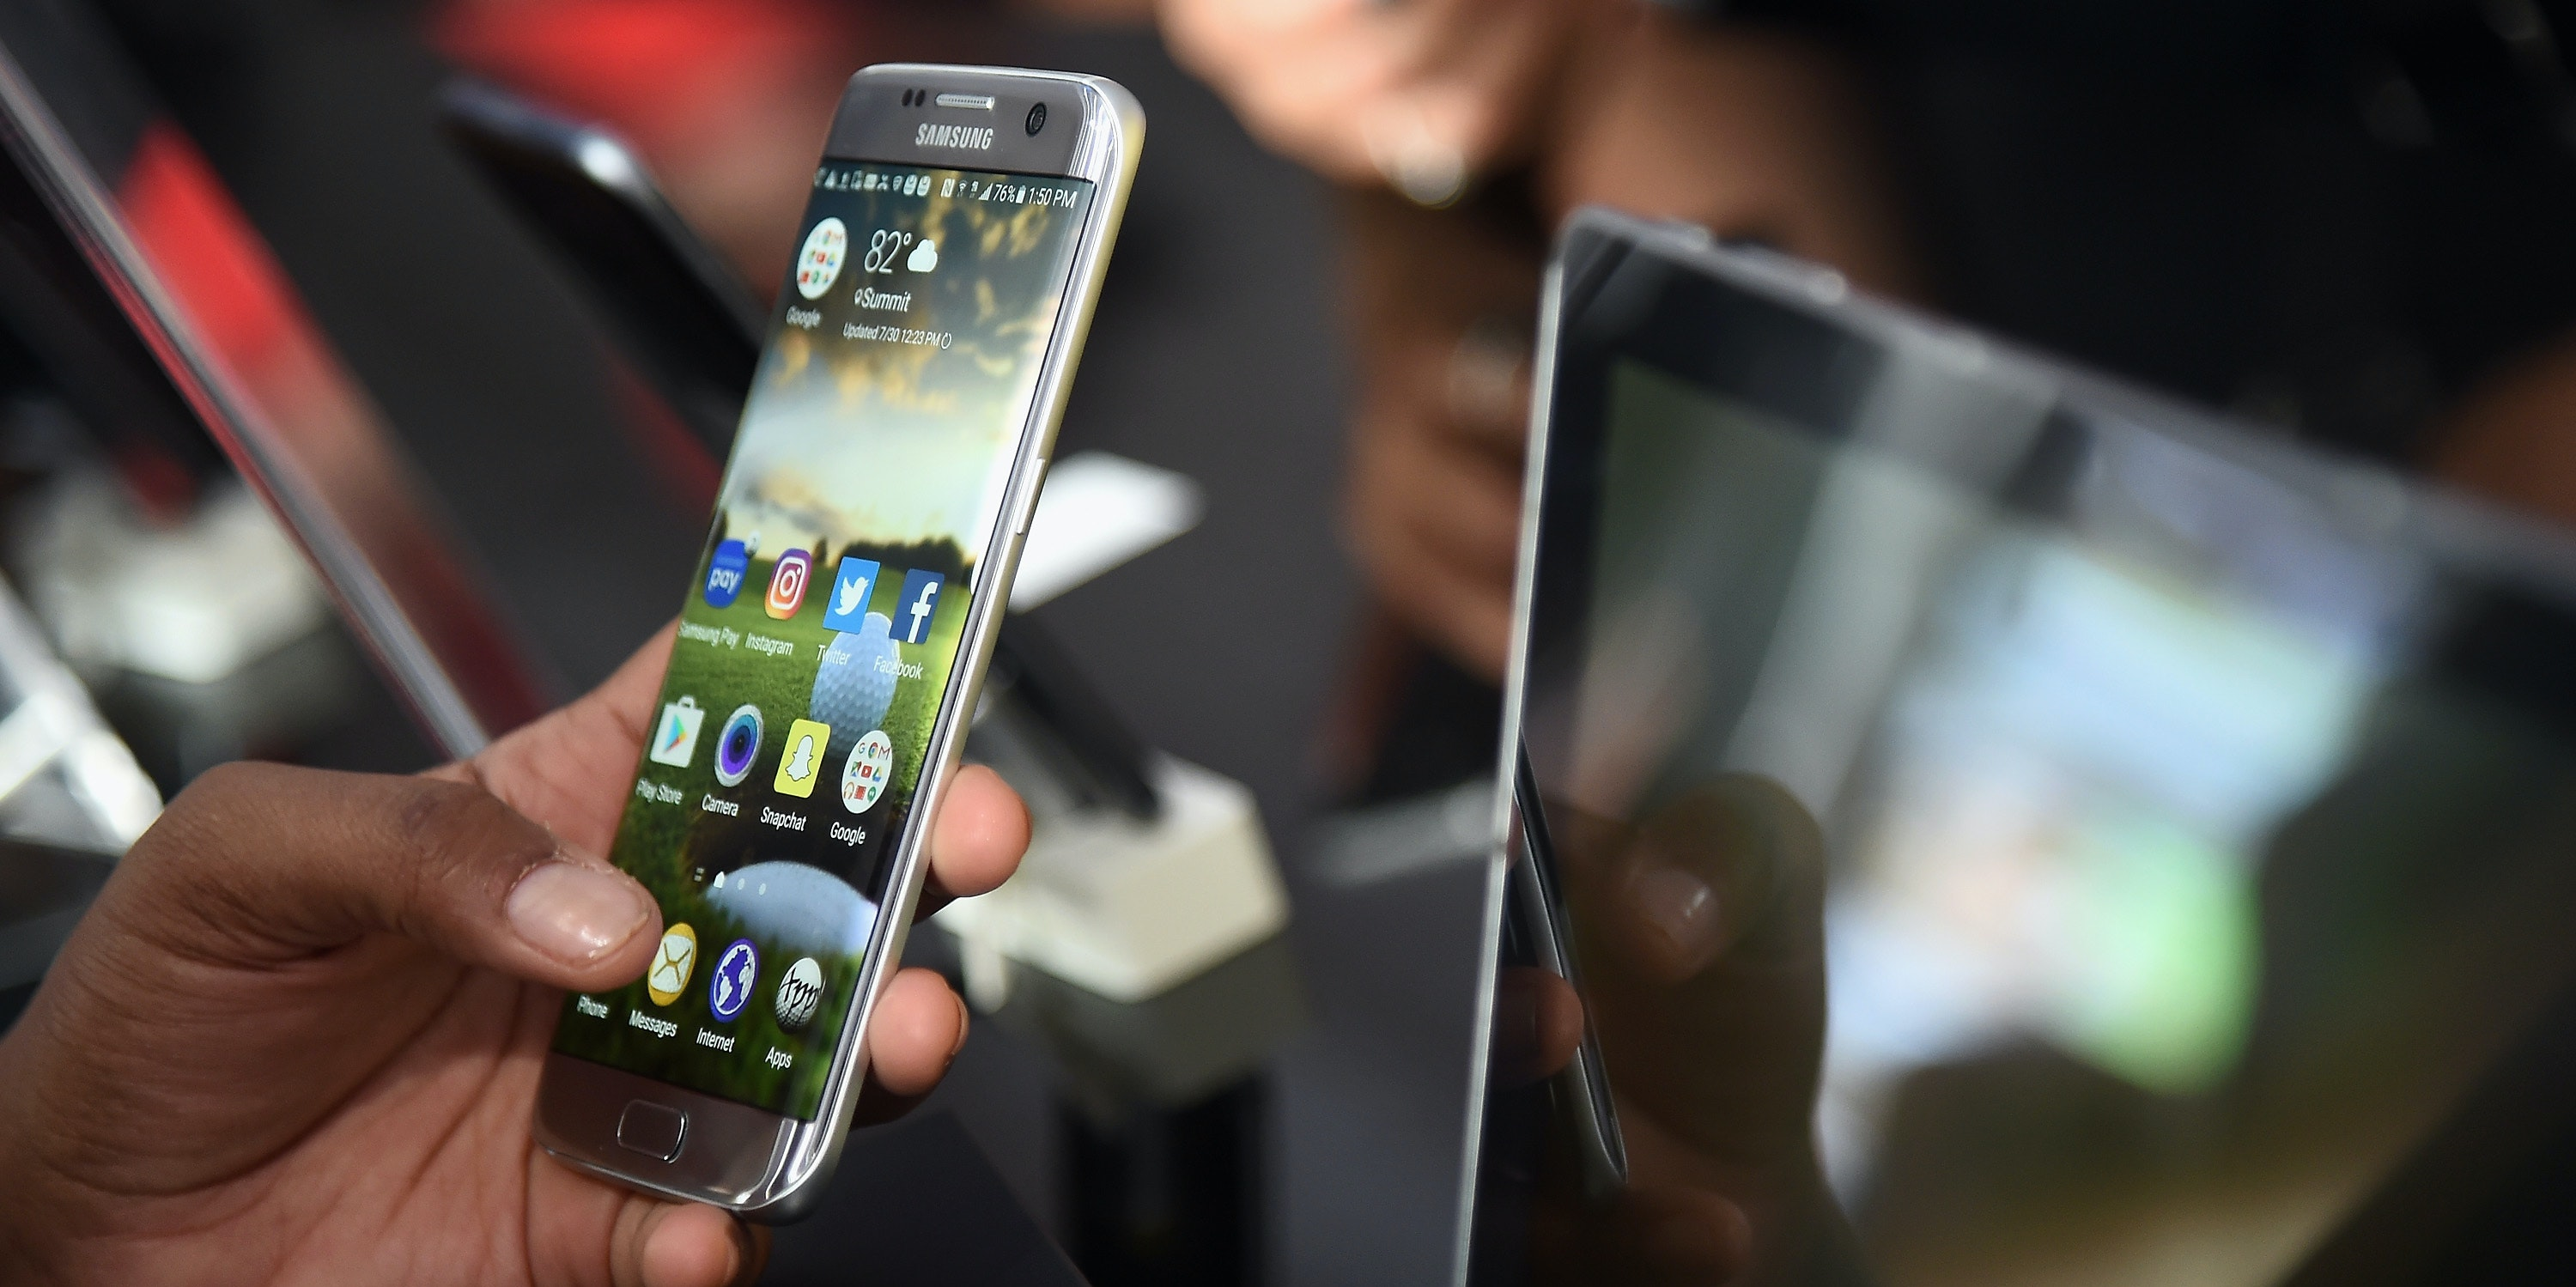 SPRINGFIELD, NJ - JULY 30:  A consumer enjoy the Samsung Galaxy S7 Edge smart phone at The Samsung Experience at the PGA Championship 2016 at Baltusrol Golf Club on July 30, 2016 in Springfield, New Jersey.  (Photo by Ilya S. Savenok/Getty Images for Samsung)